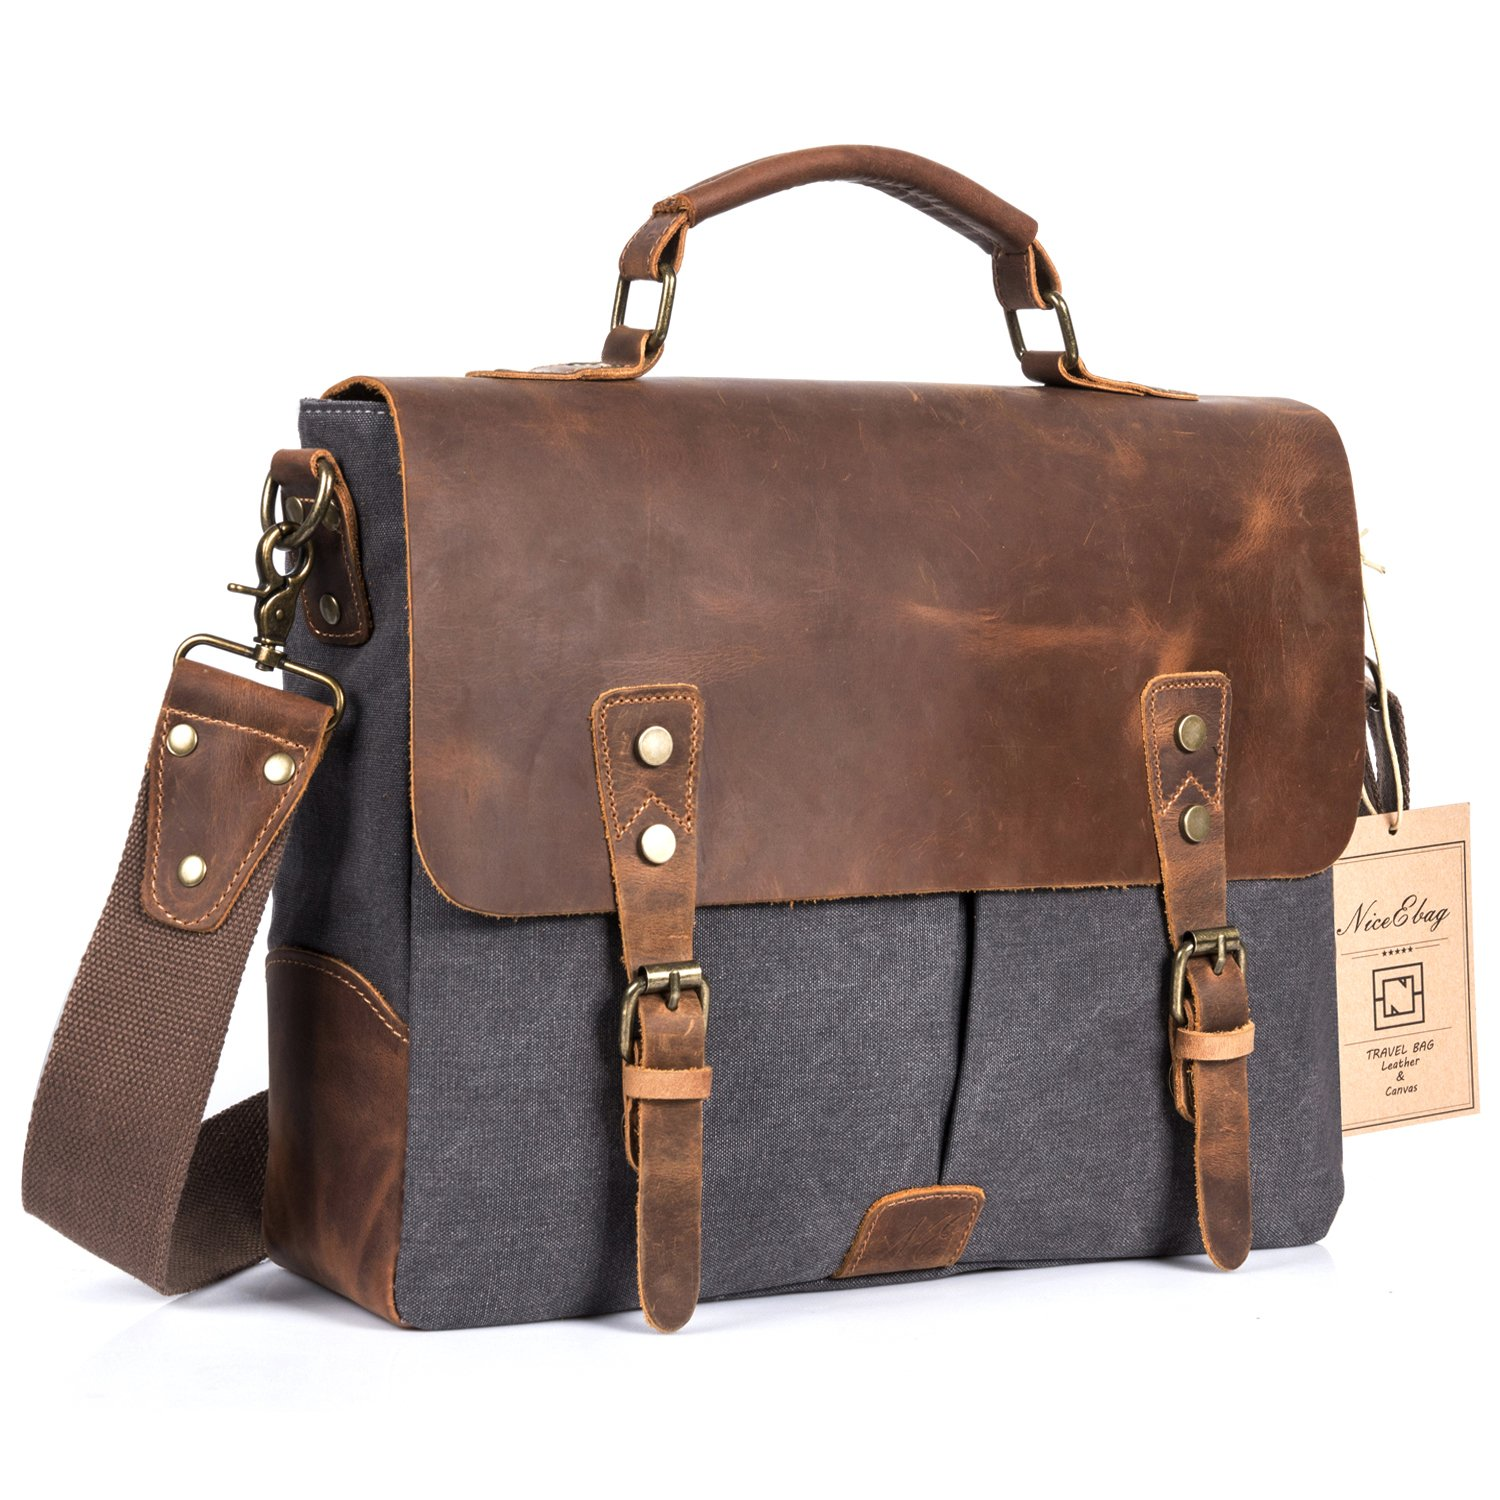 308f328240b Amazon.com  NiceEbag Leather Messenger Bag Vintage Canvas Laptop Shoulder  Bag Men Satchel Briefcase Bag Fits Up 13.3 Inch Laptop (Dark Grey)   Computers   ...